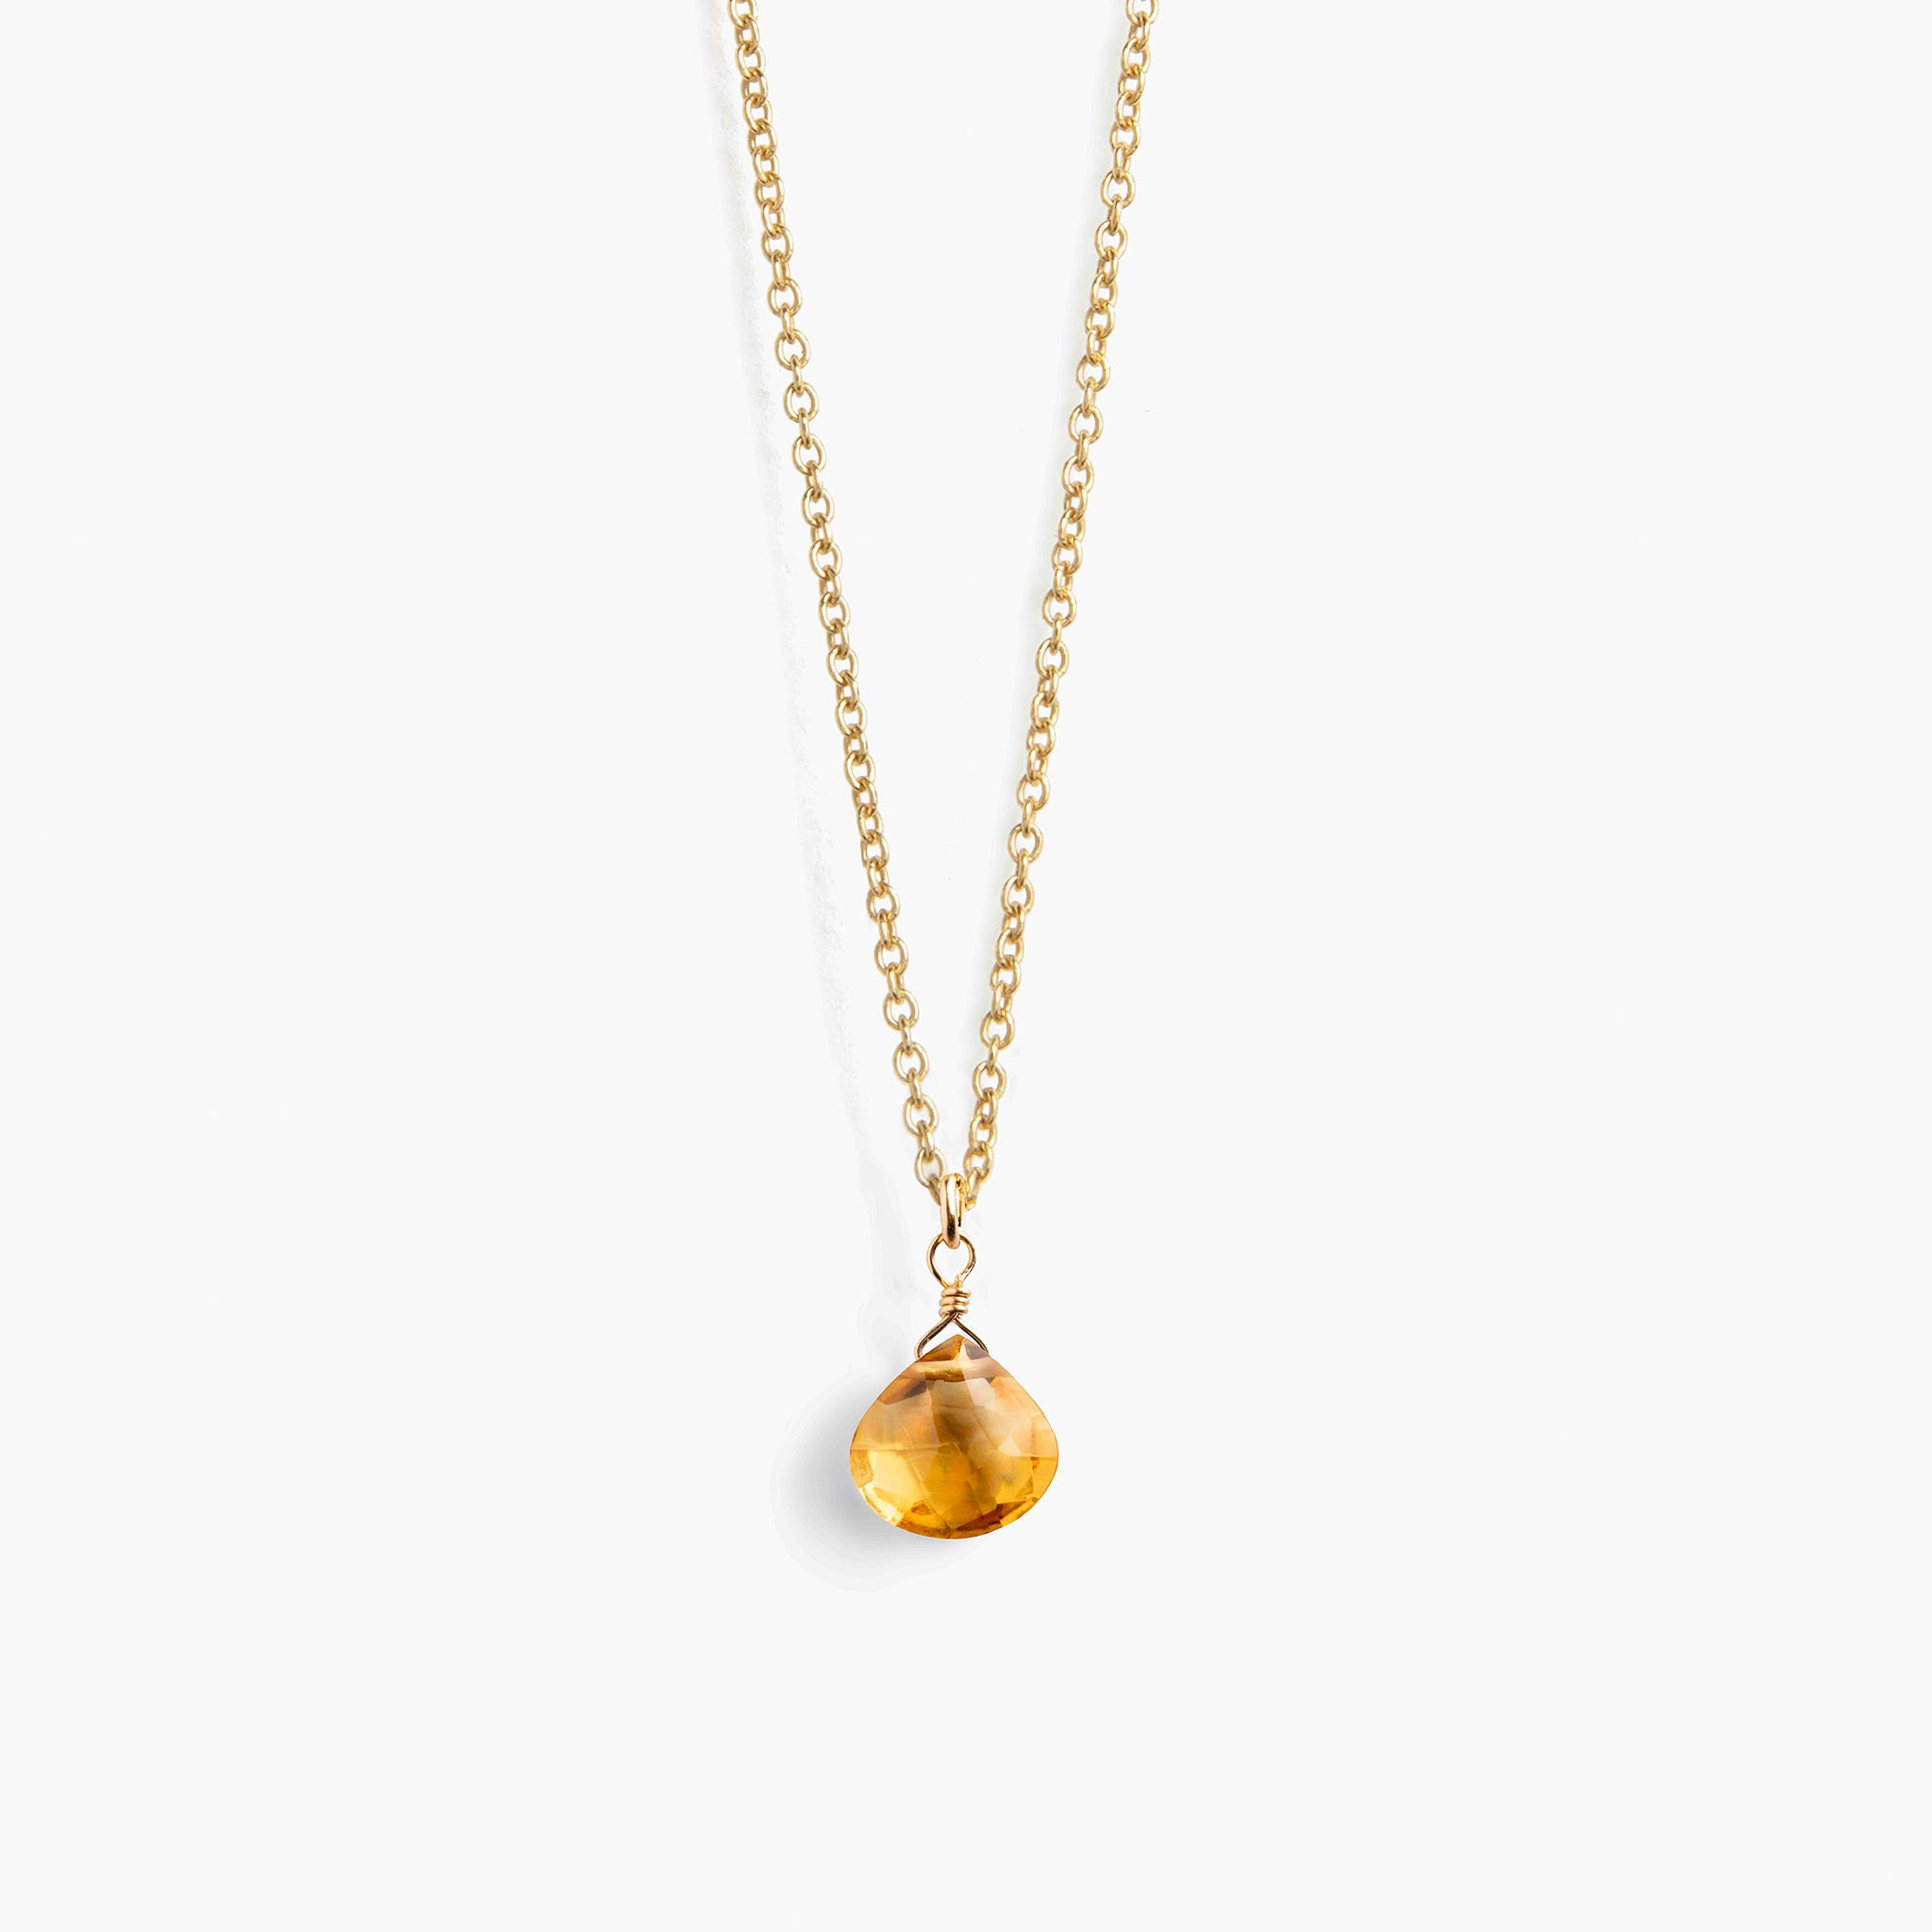 Fine Gold Chain Necklace | Citrine